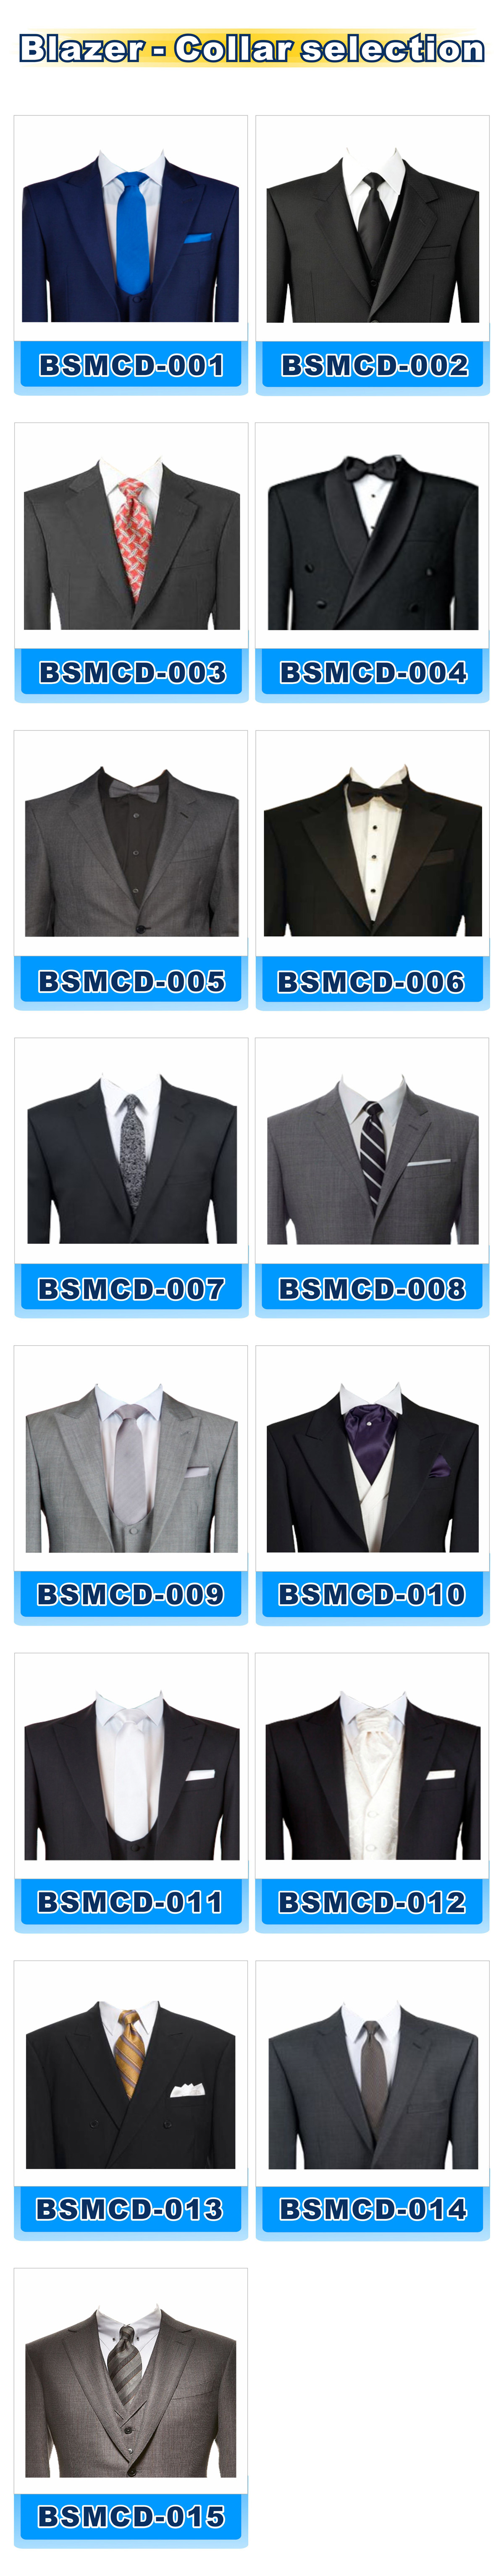 Blazers-collar selection-20121013